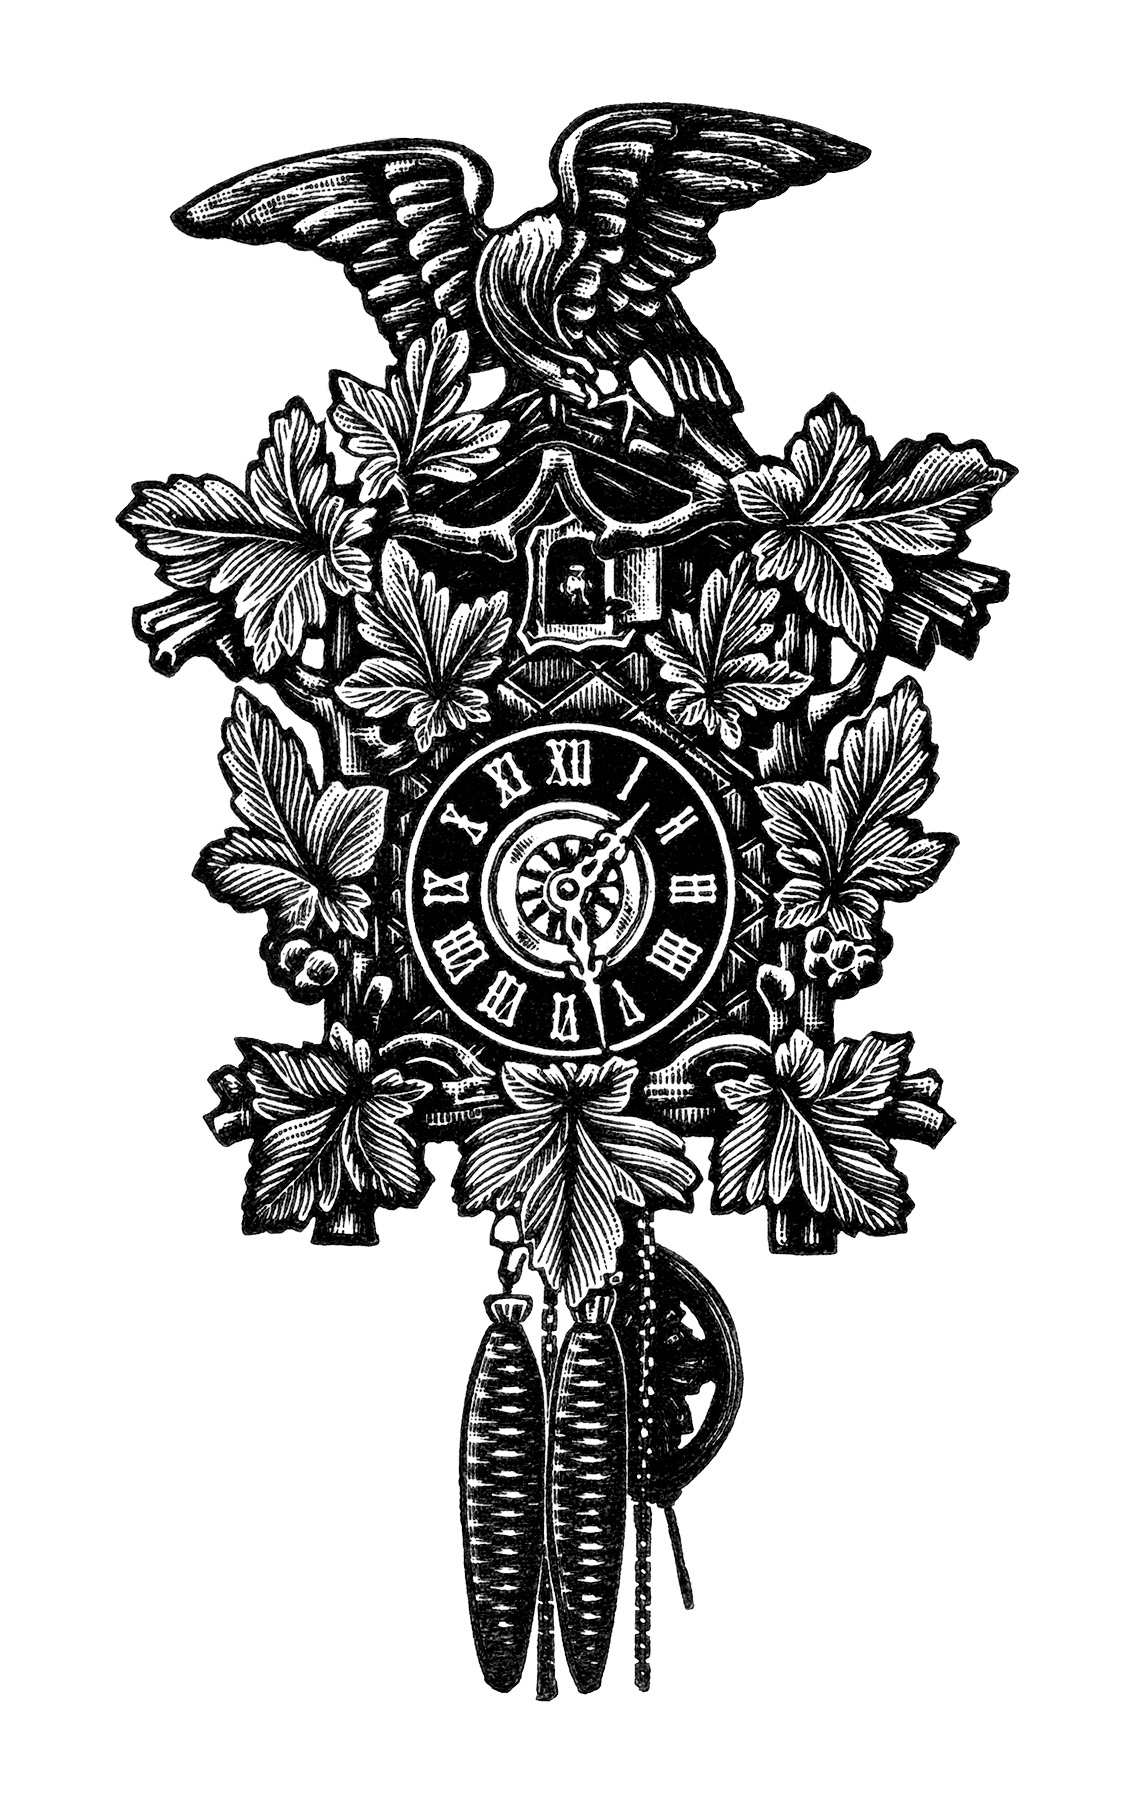 Cuckoo Clock Bird Illustration Antique Cuckoo Clocks   Free